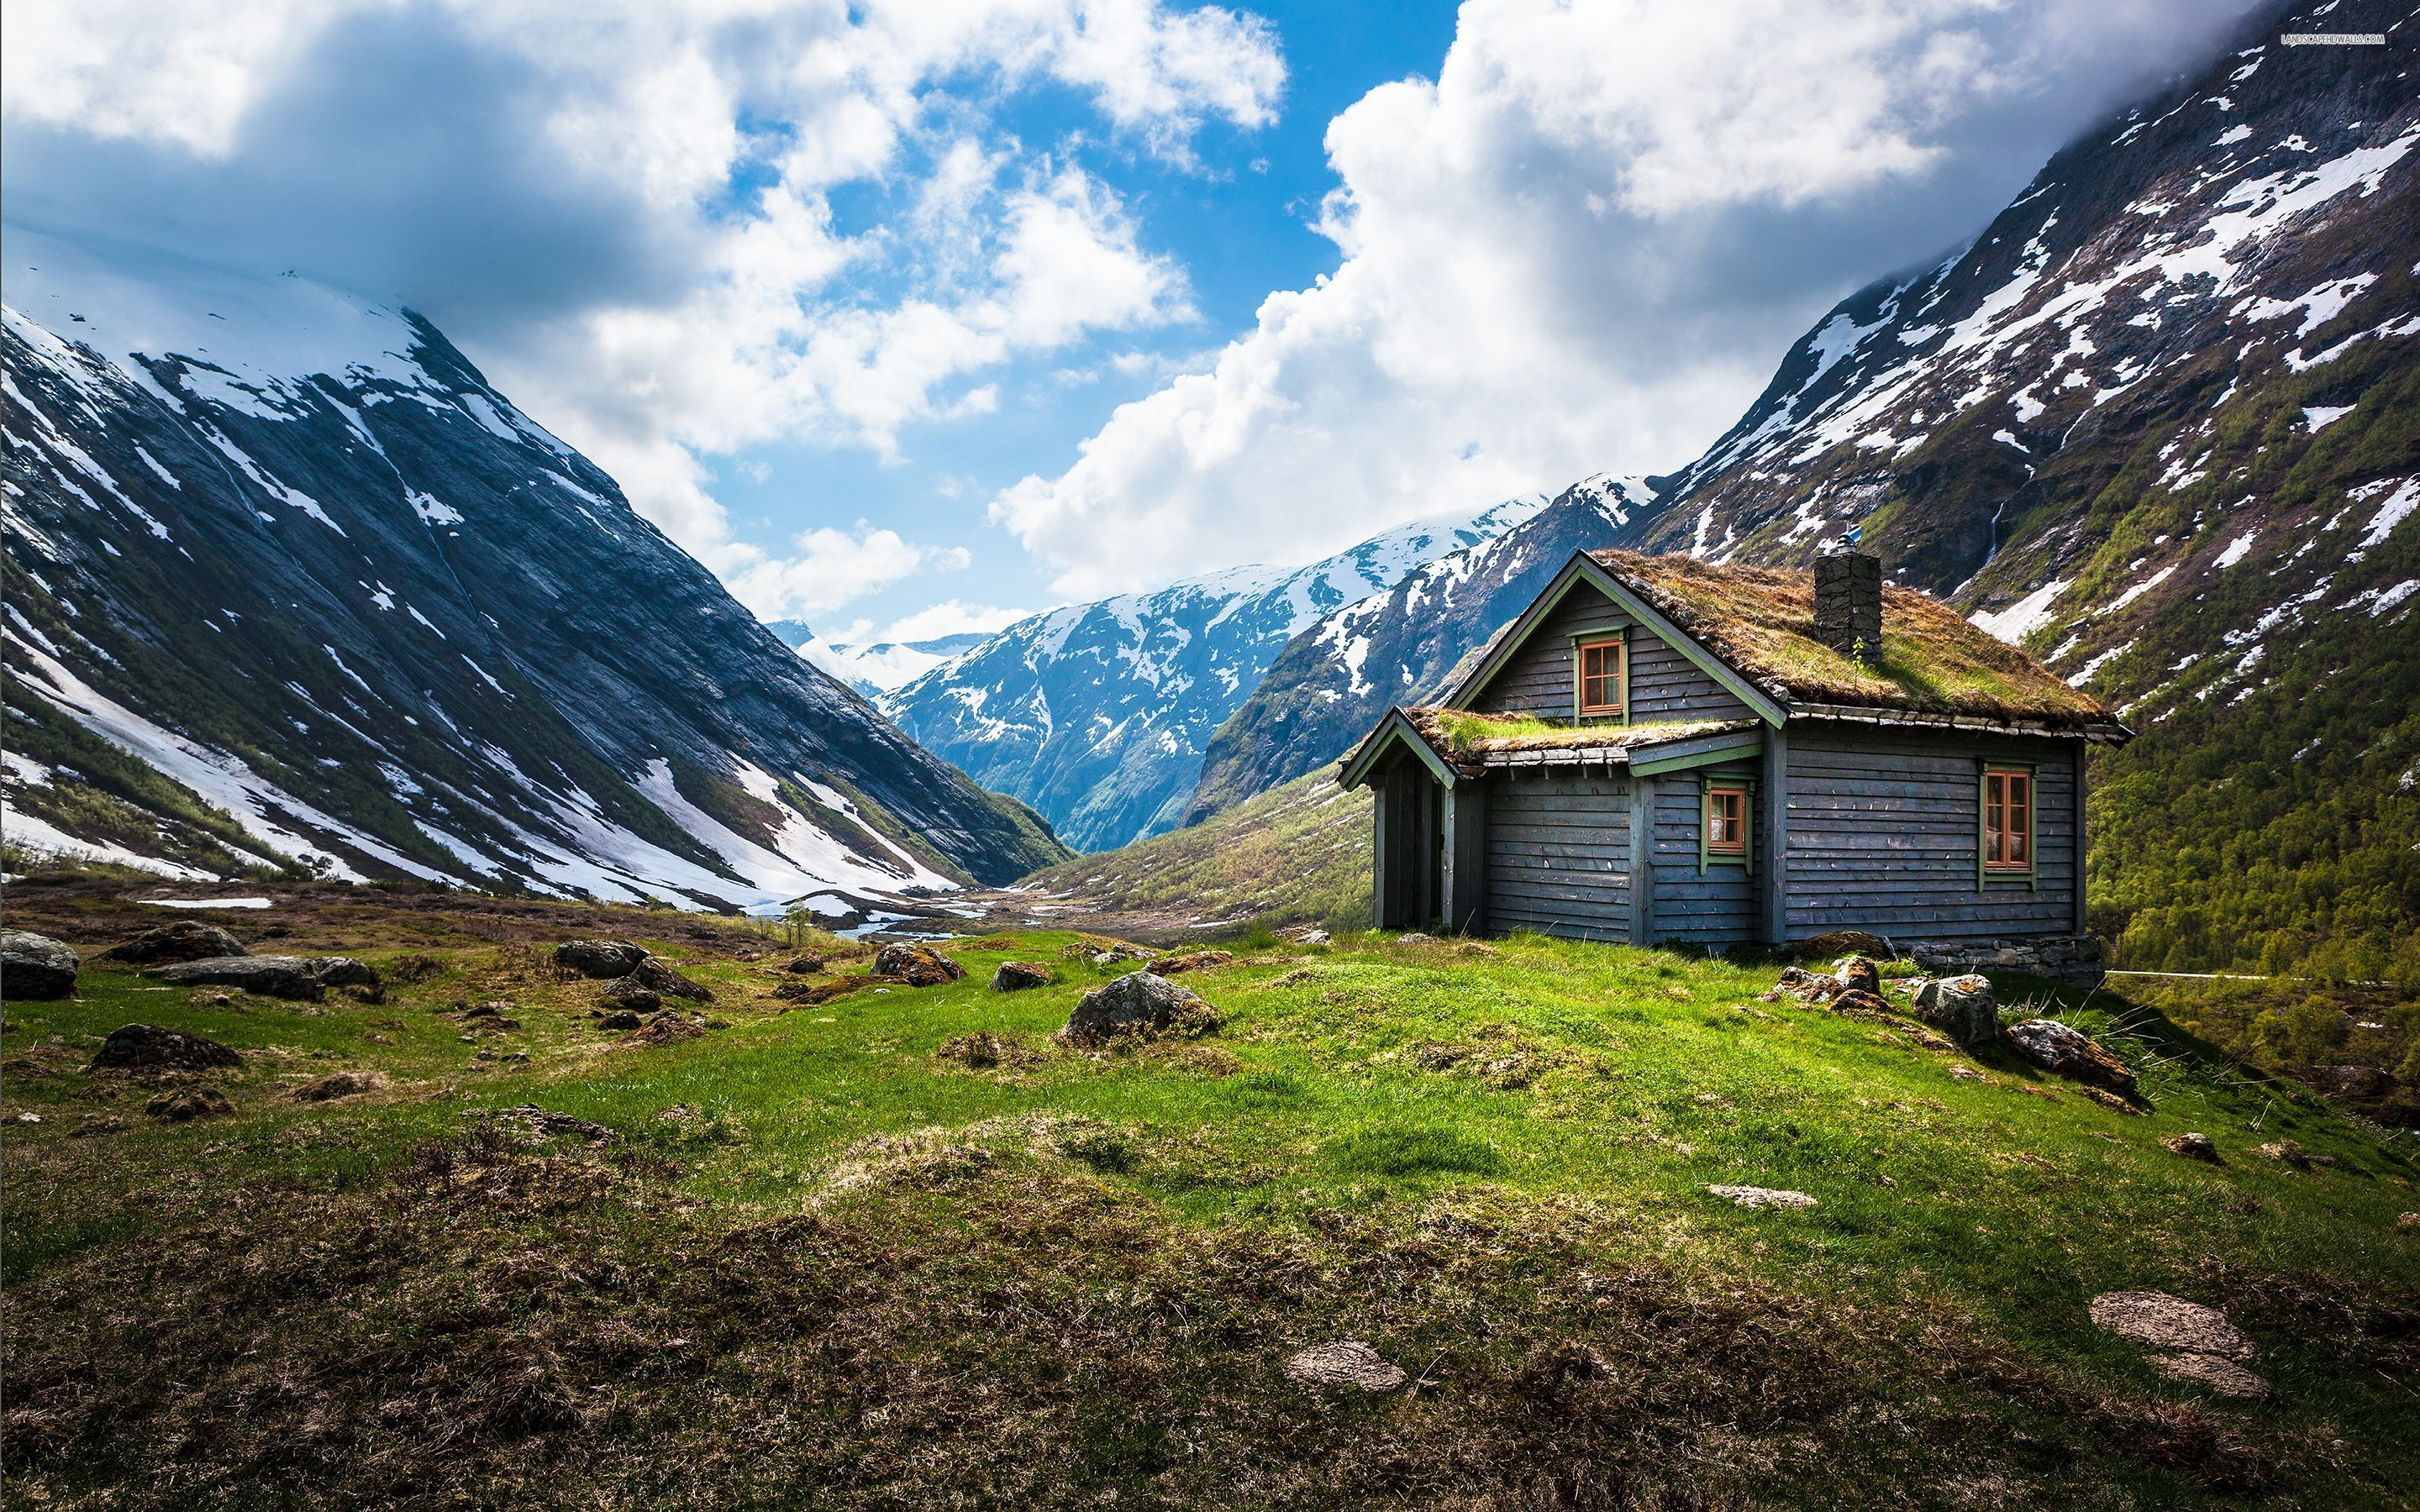 cabin in the mountains hd wallpaper 1644759 card from user